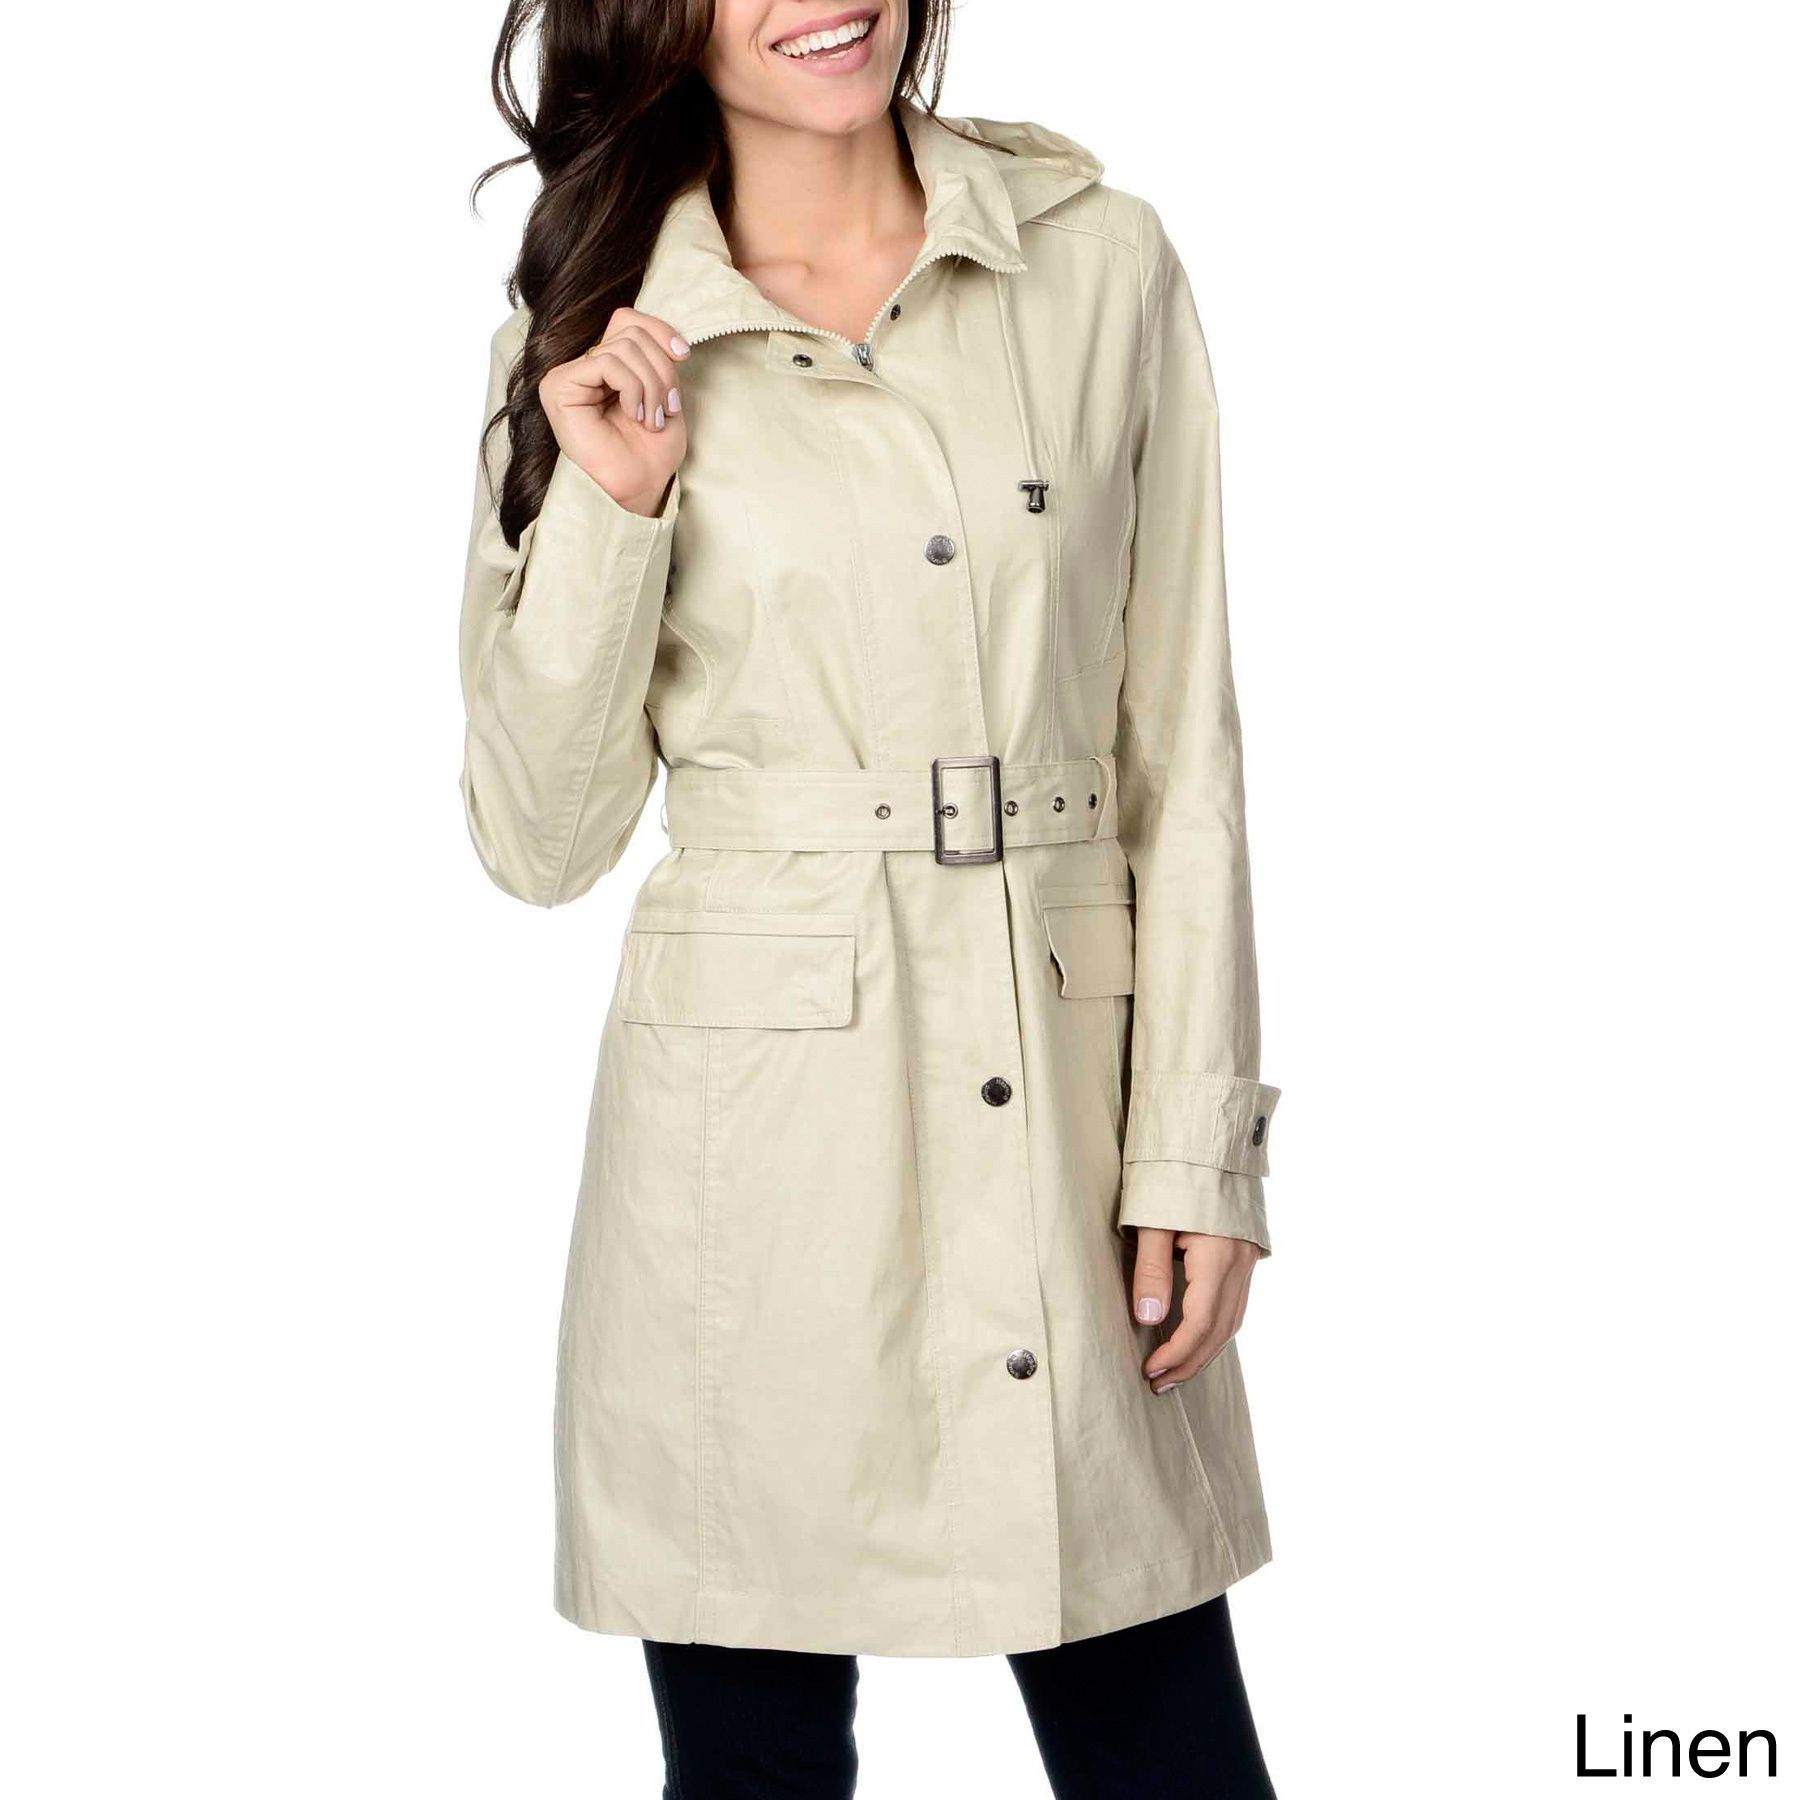 1cde3f48e Layer up in this cute short coat from Nuage, made with a detachable ...